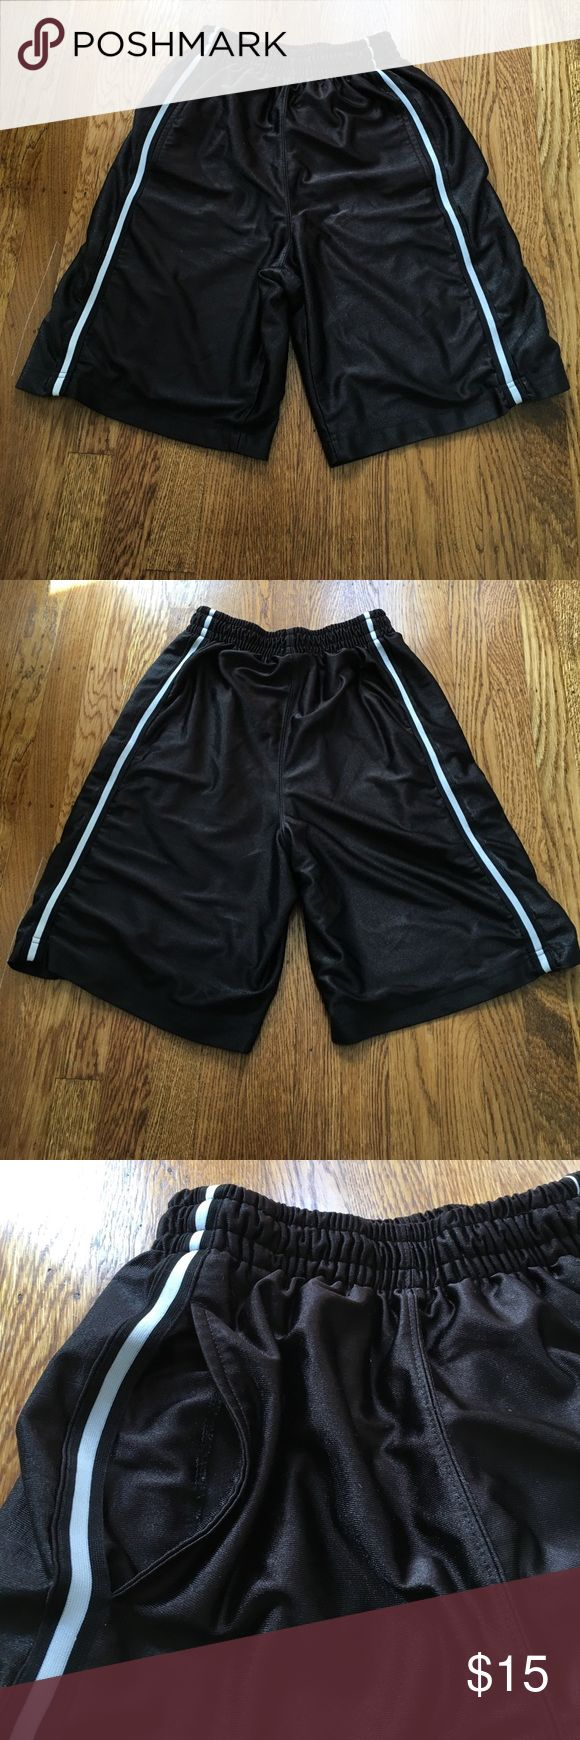 Men's footlocker size small shorts Men's footlocker size small shorts Foot locker Shorts Athletic